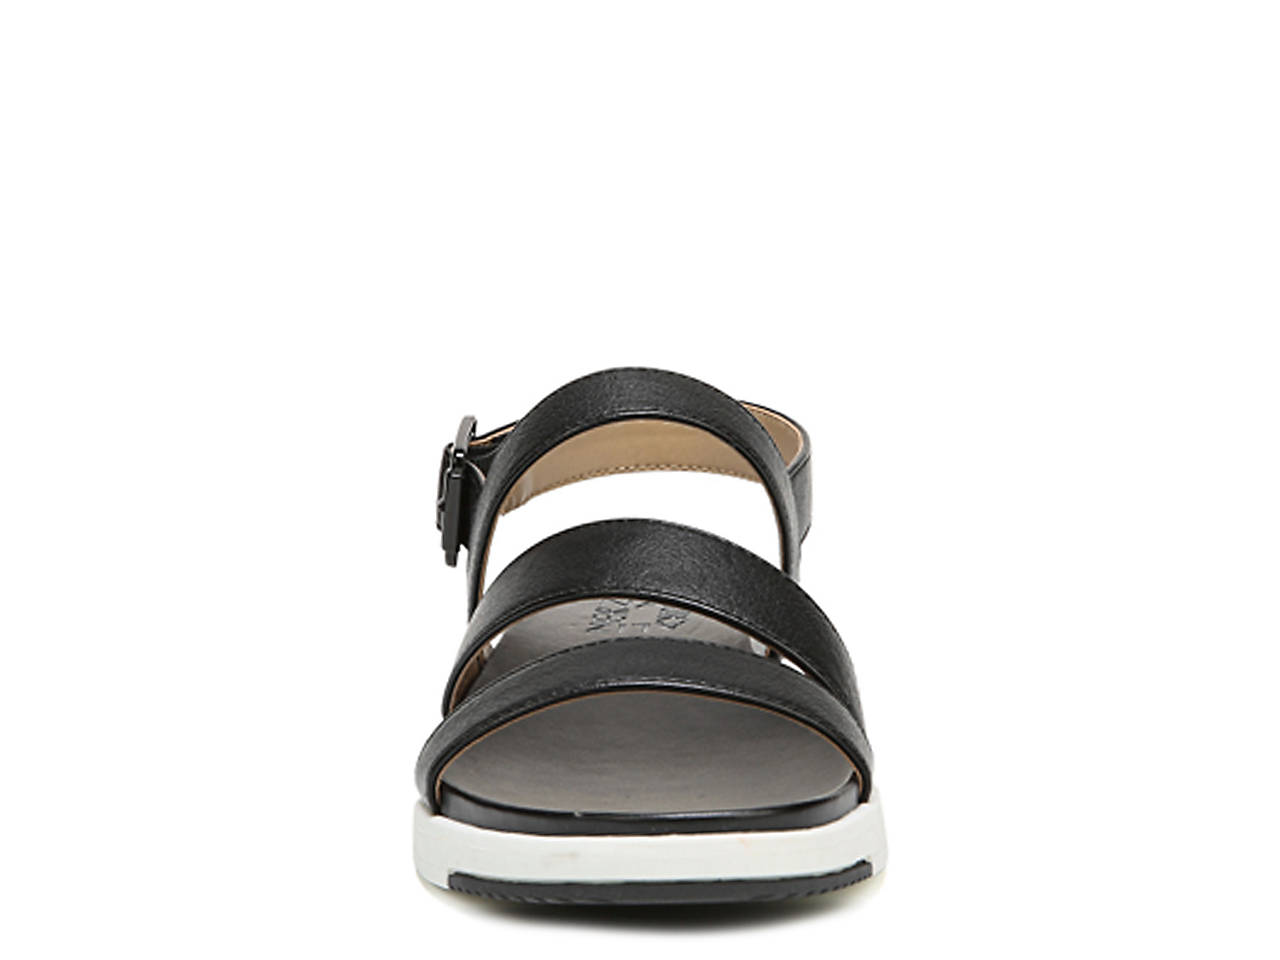 c4a77ef97f0b Naturalizer Andrea Wedge Sandal Women s Shoes